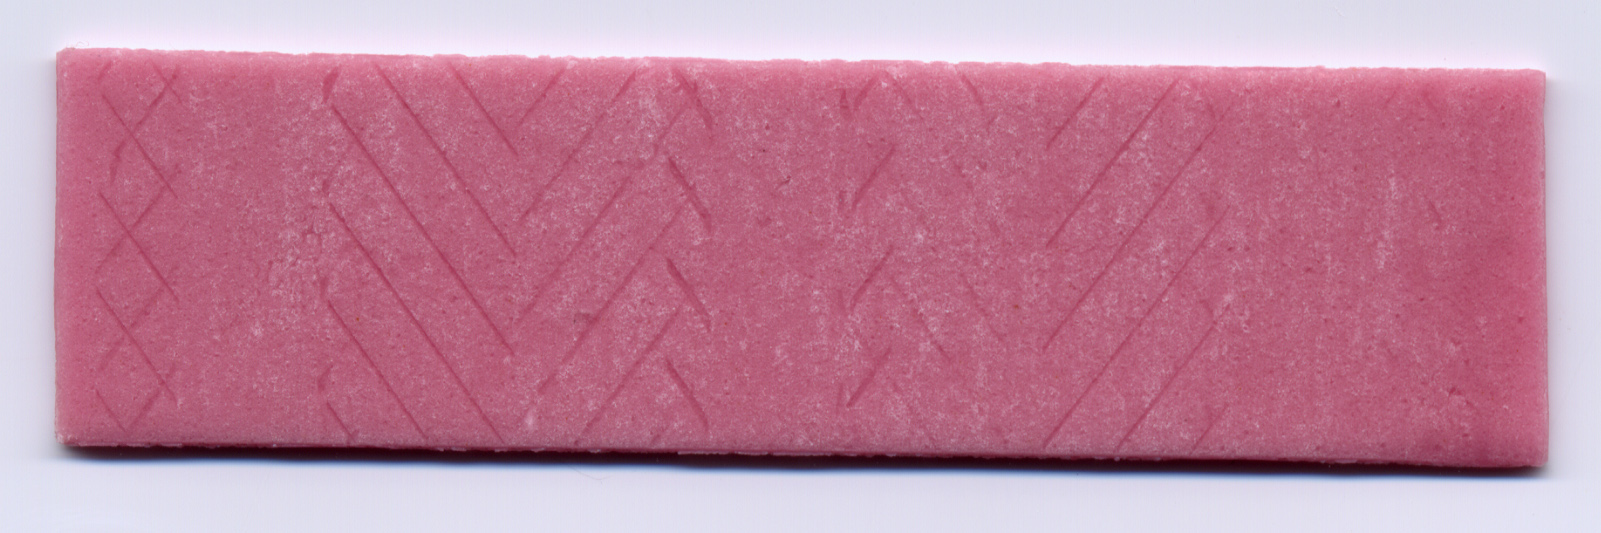 piece of chewinggum chewing gum pink candy